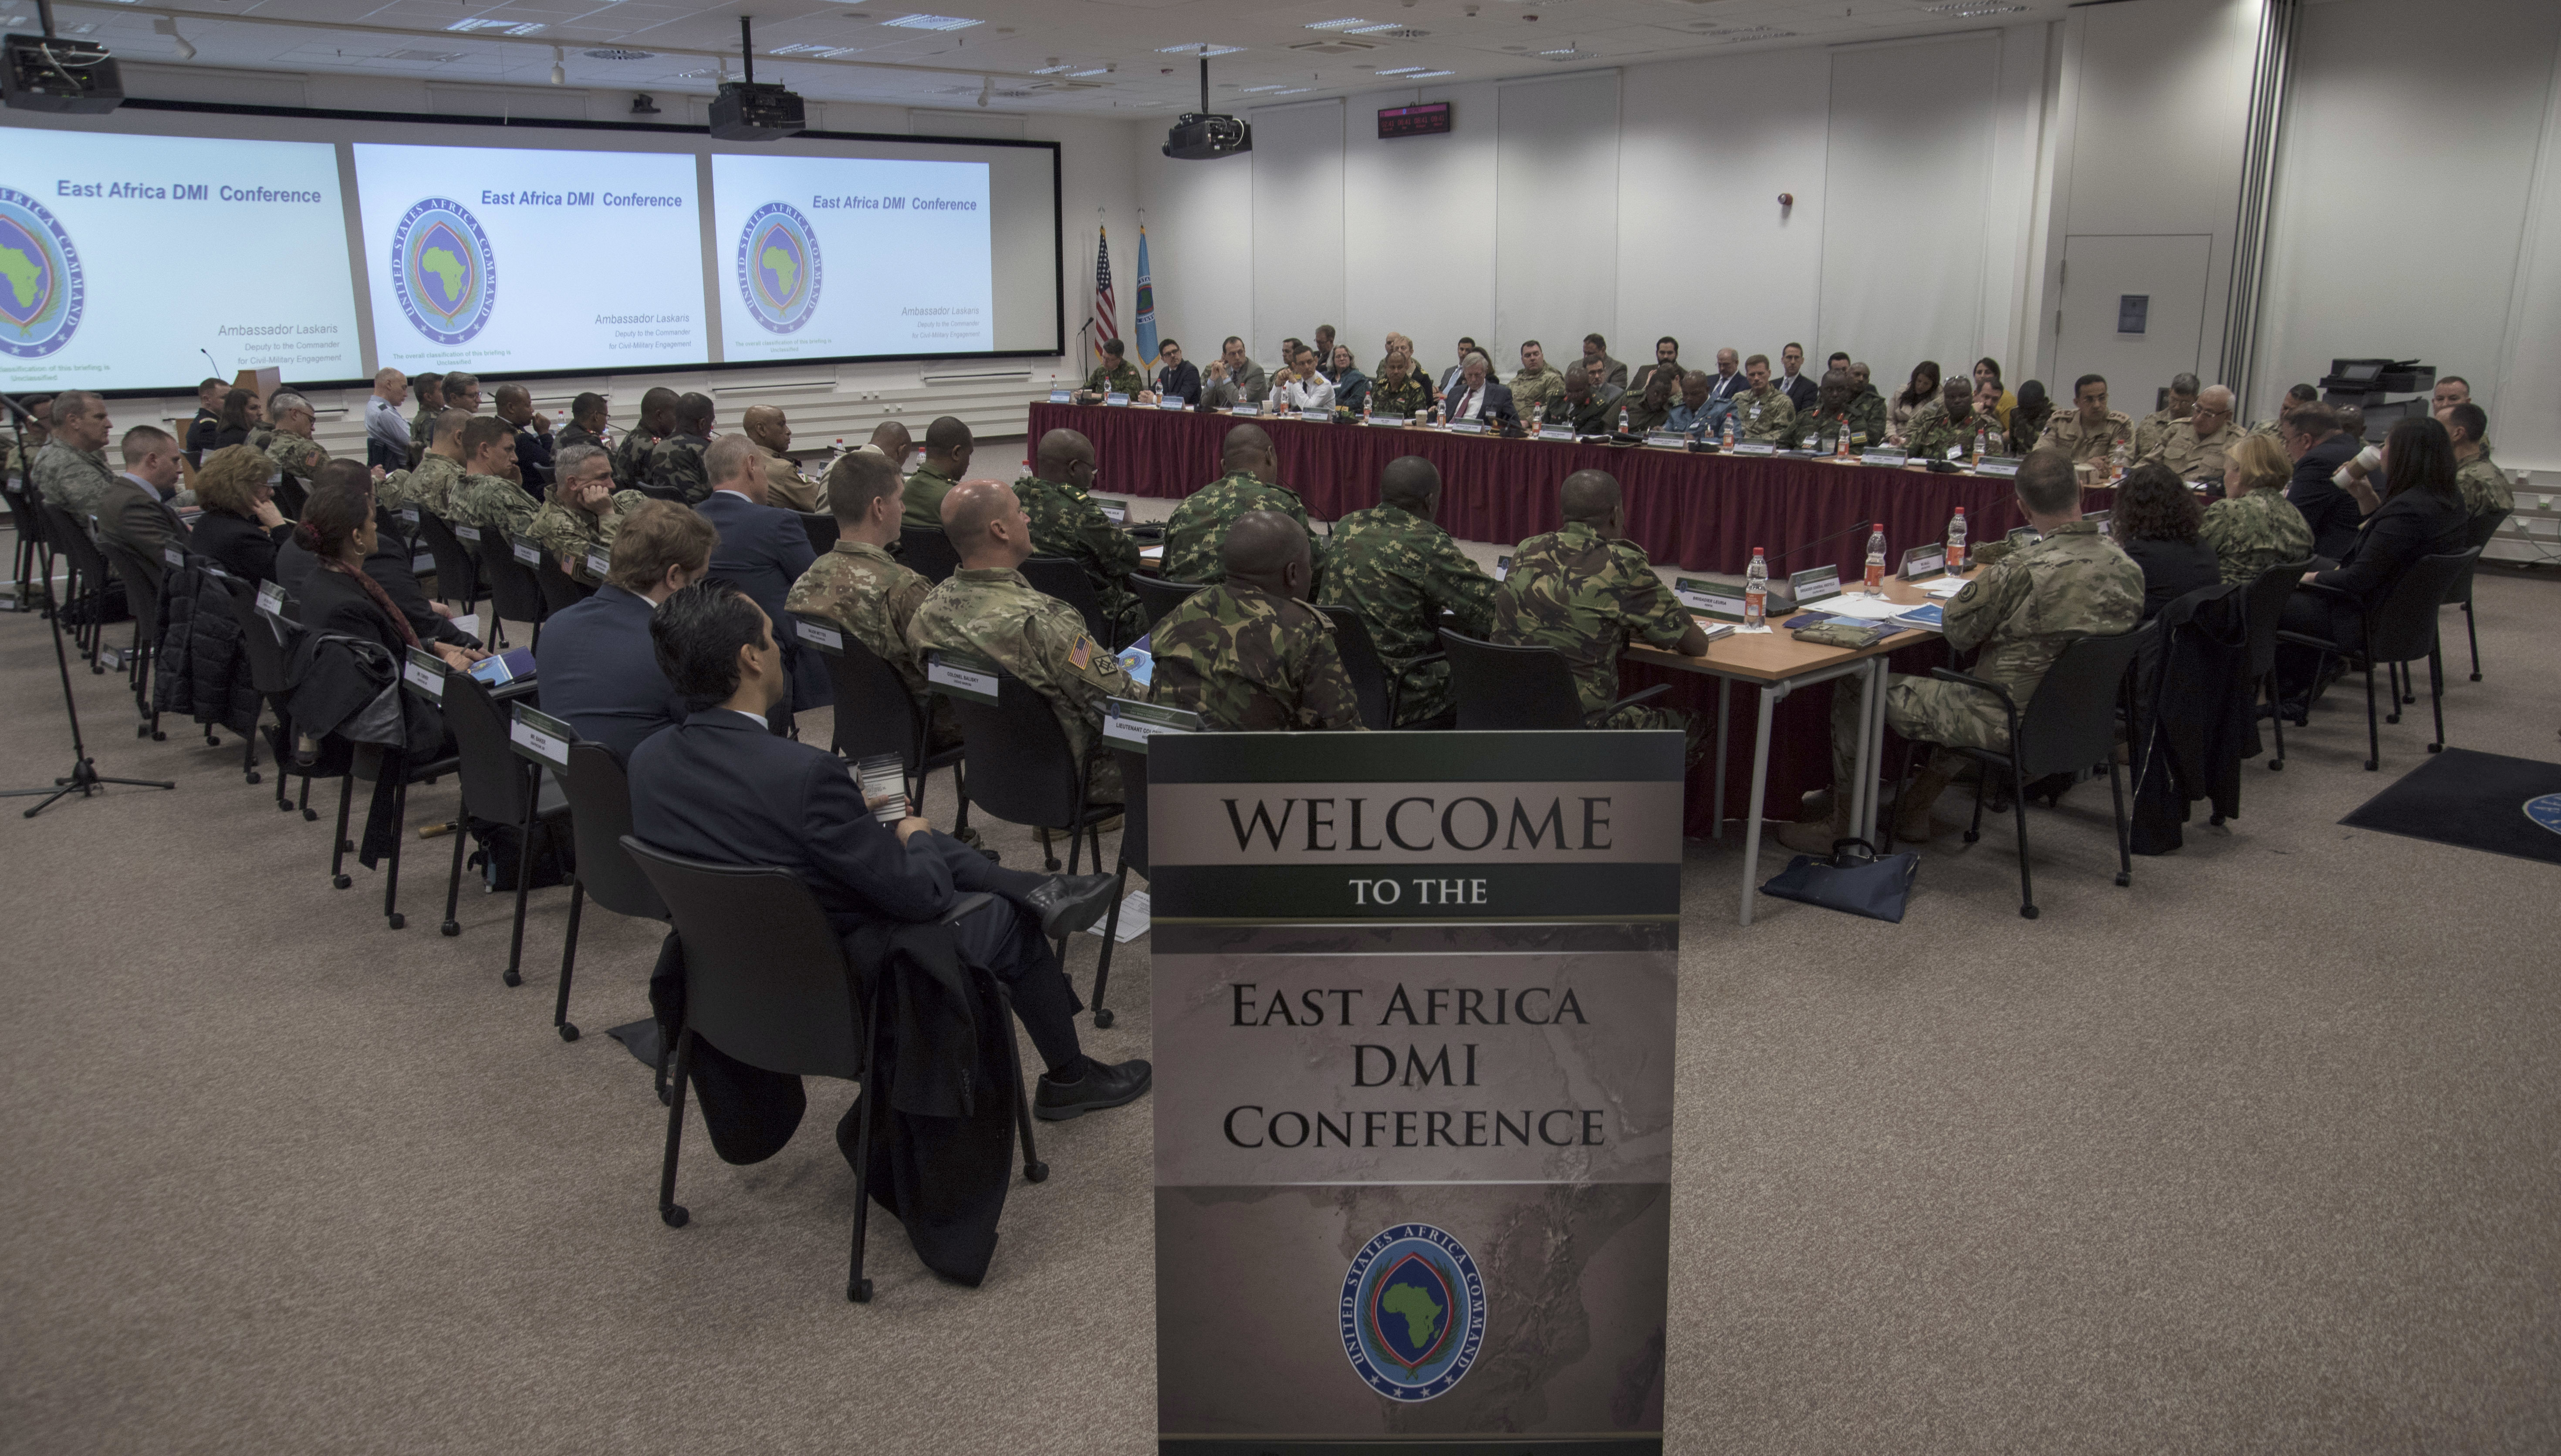 Senior military intelligence officials from East Africa, Europe, the U.S., Canada, and representatives from the African Union Mission to Somalia gather for the 2019 East Africa Directors of Military Intelligence Conference April 3, 2019 in Stuttgart, Germany. EADMIC is an annual AFRICOM event that brings together partner military intelligence chiefs to identify best practices and explore collaborative solutions to shared security problems in East Africa. (U.S. Navy photo by Mass Communication Specialist 1st Class Christopher Hurd/Released)